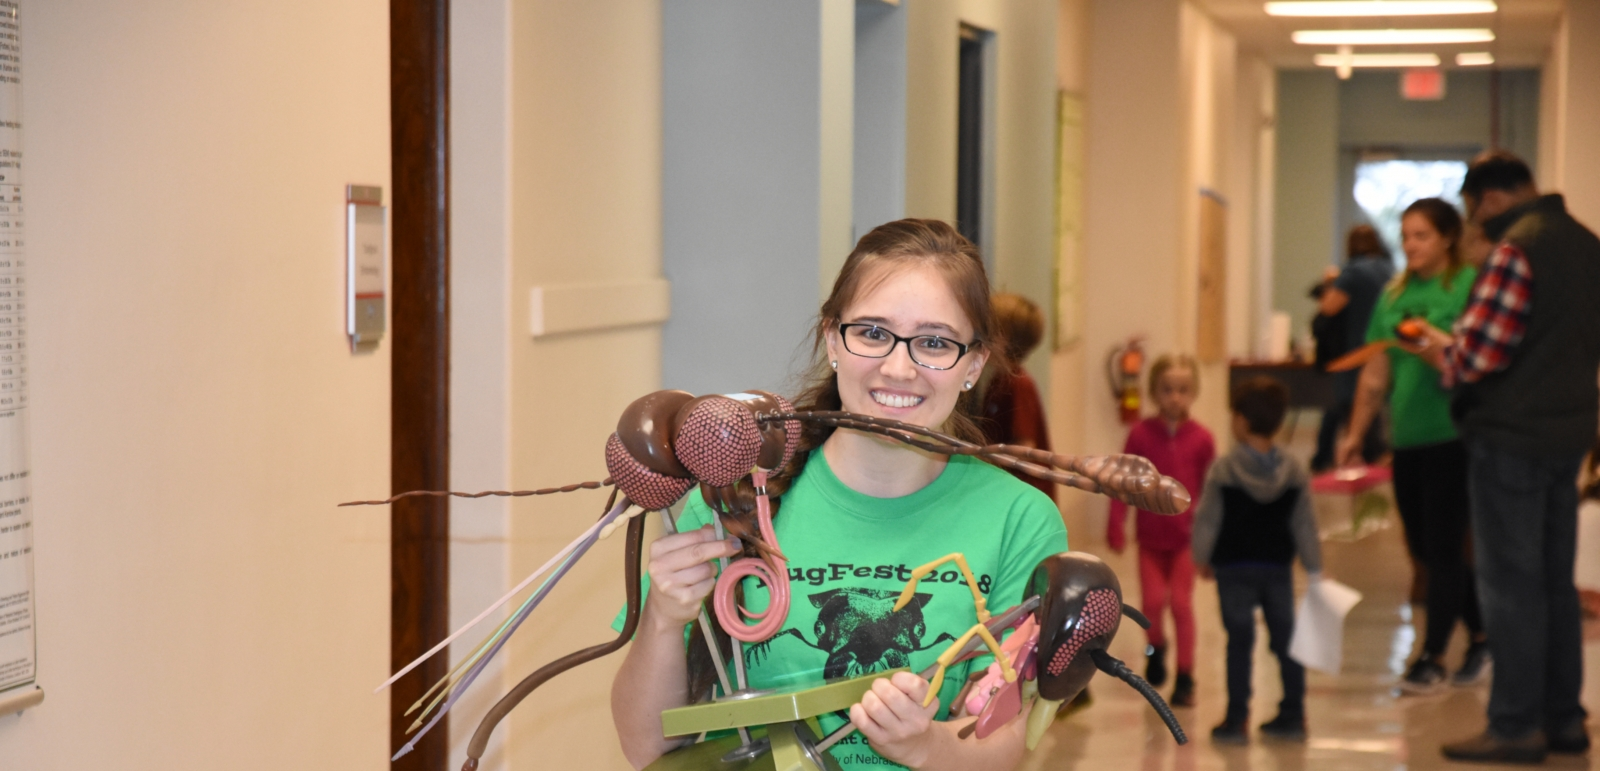 bugfest activities with k-12 students